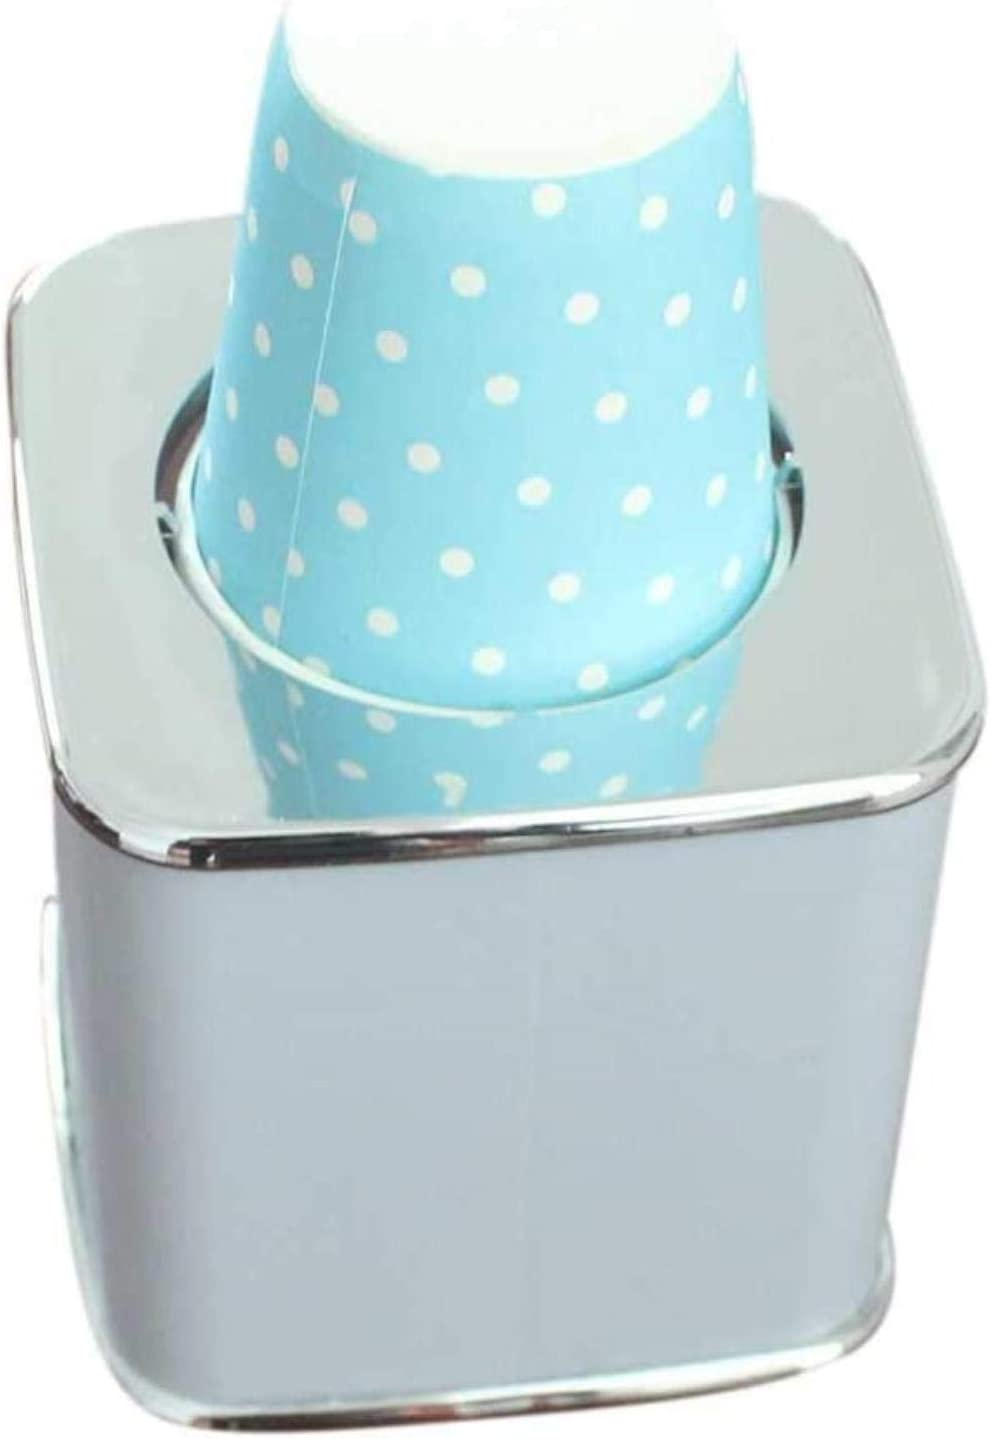 ZHANGLI Raleigh Mall Paper free shipping Cup Dispenser 3 Organizer Container Ounce Bathroom